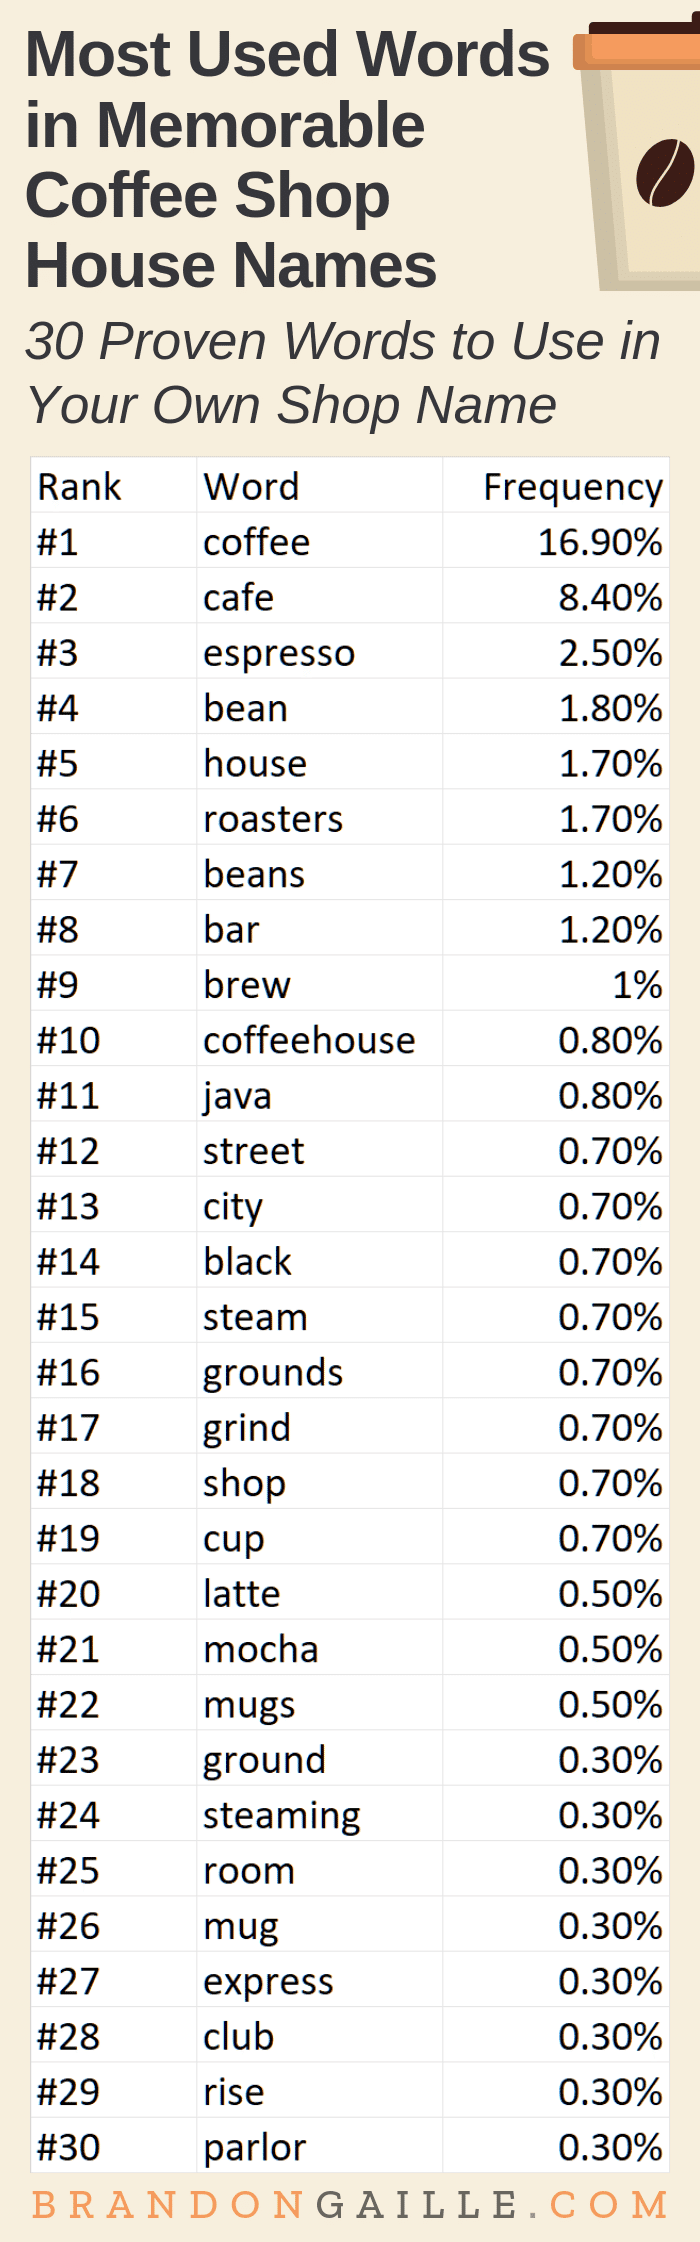 250 Real Catchy Coffee Shop House Names, 2020